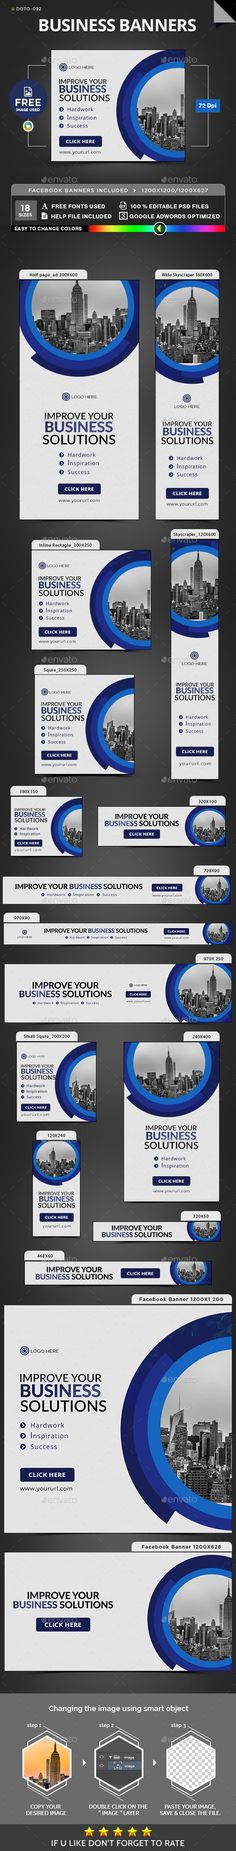 Business Banners Template PSD